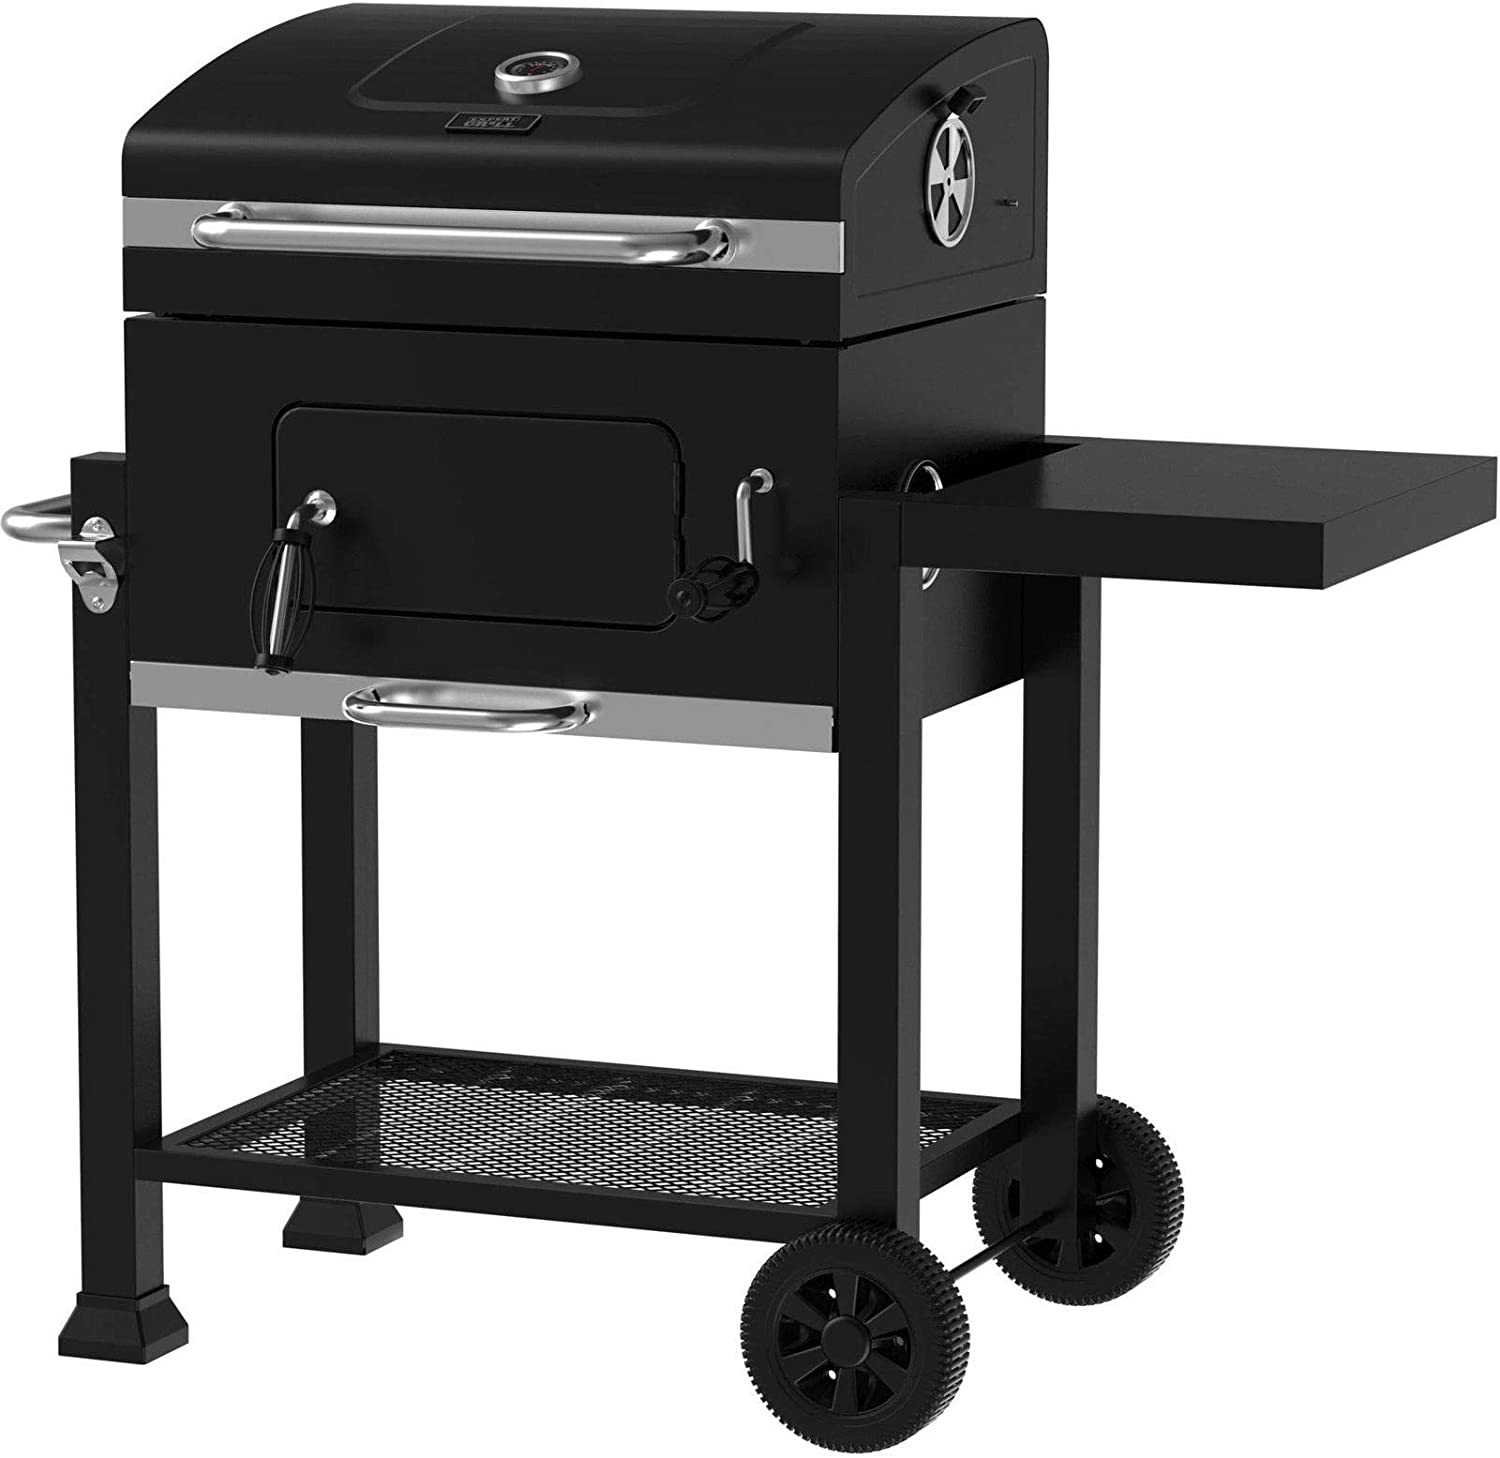 Best Heavy-Duty Grill: Expert Heavy-Duty Charcoal Grill, 24-Inch